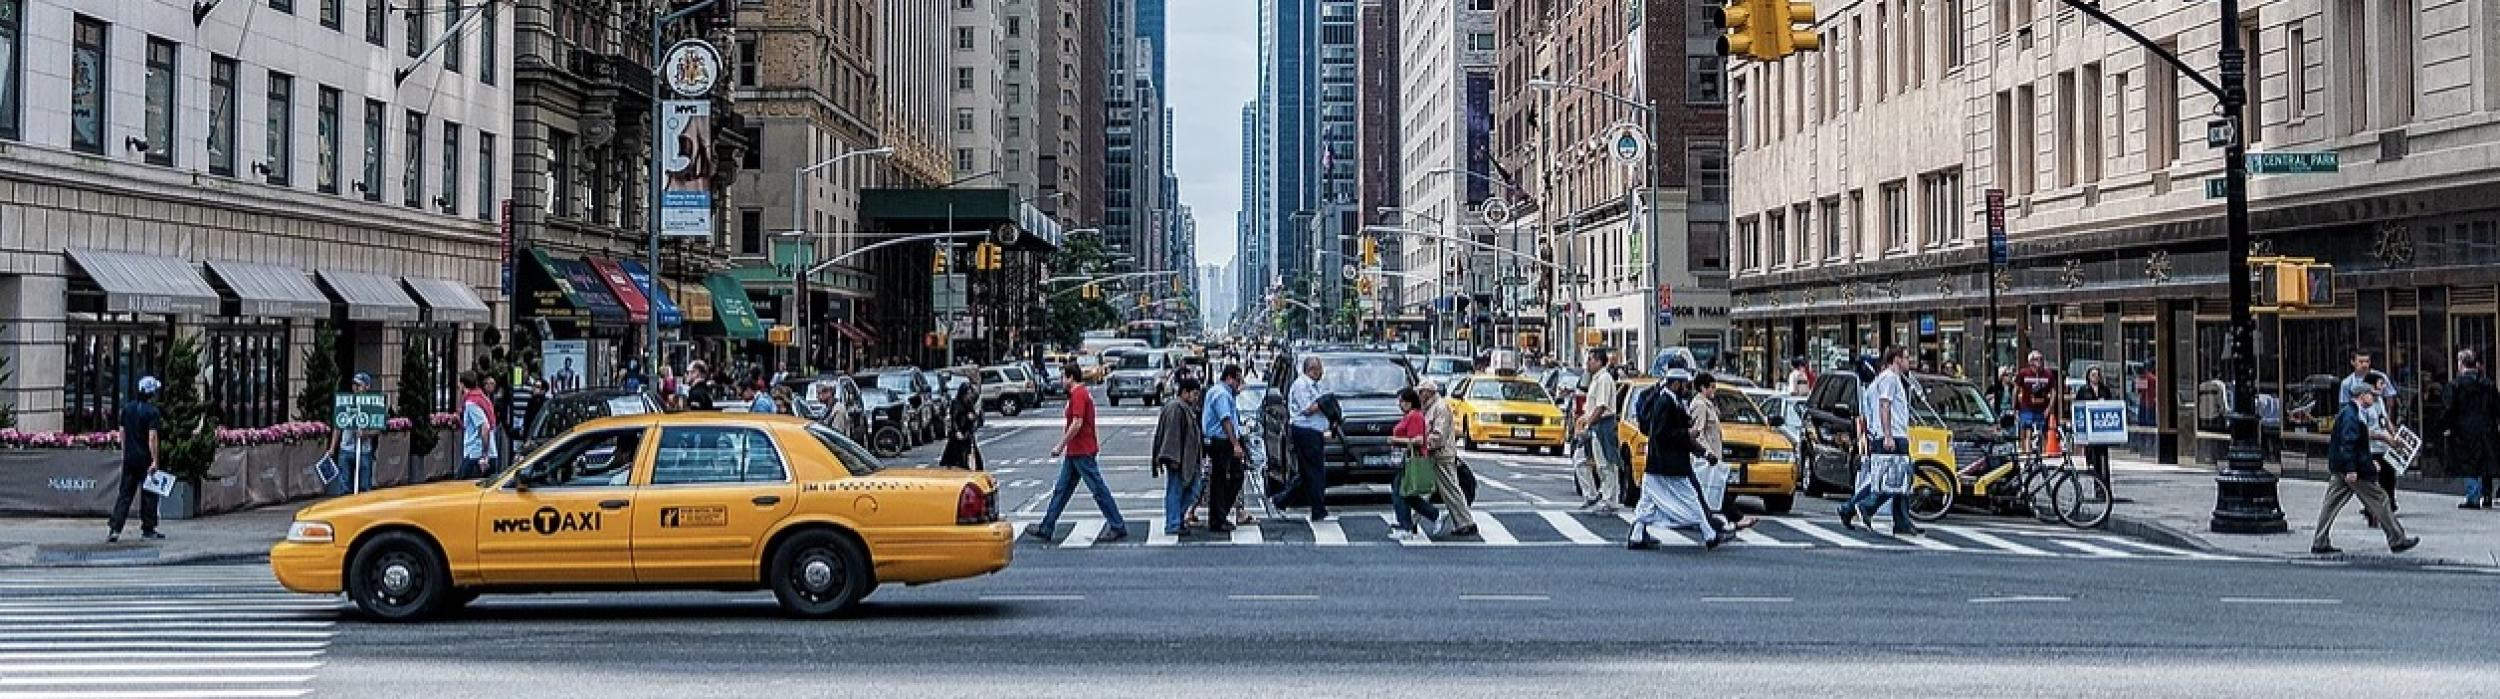 NYC scene with yellow taxi